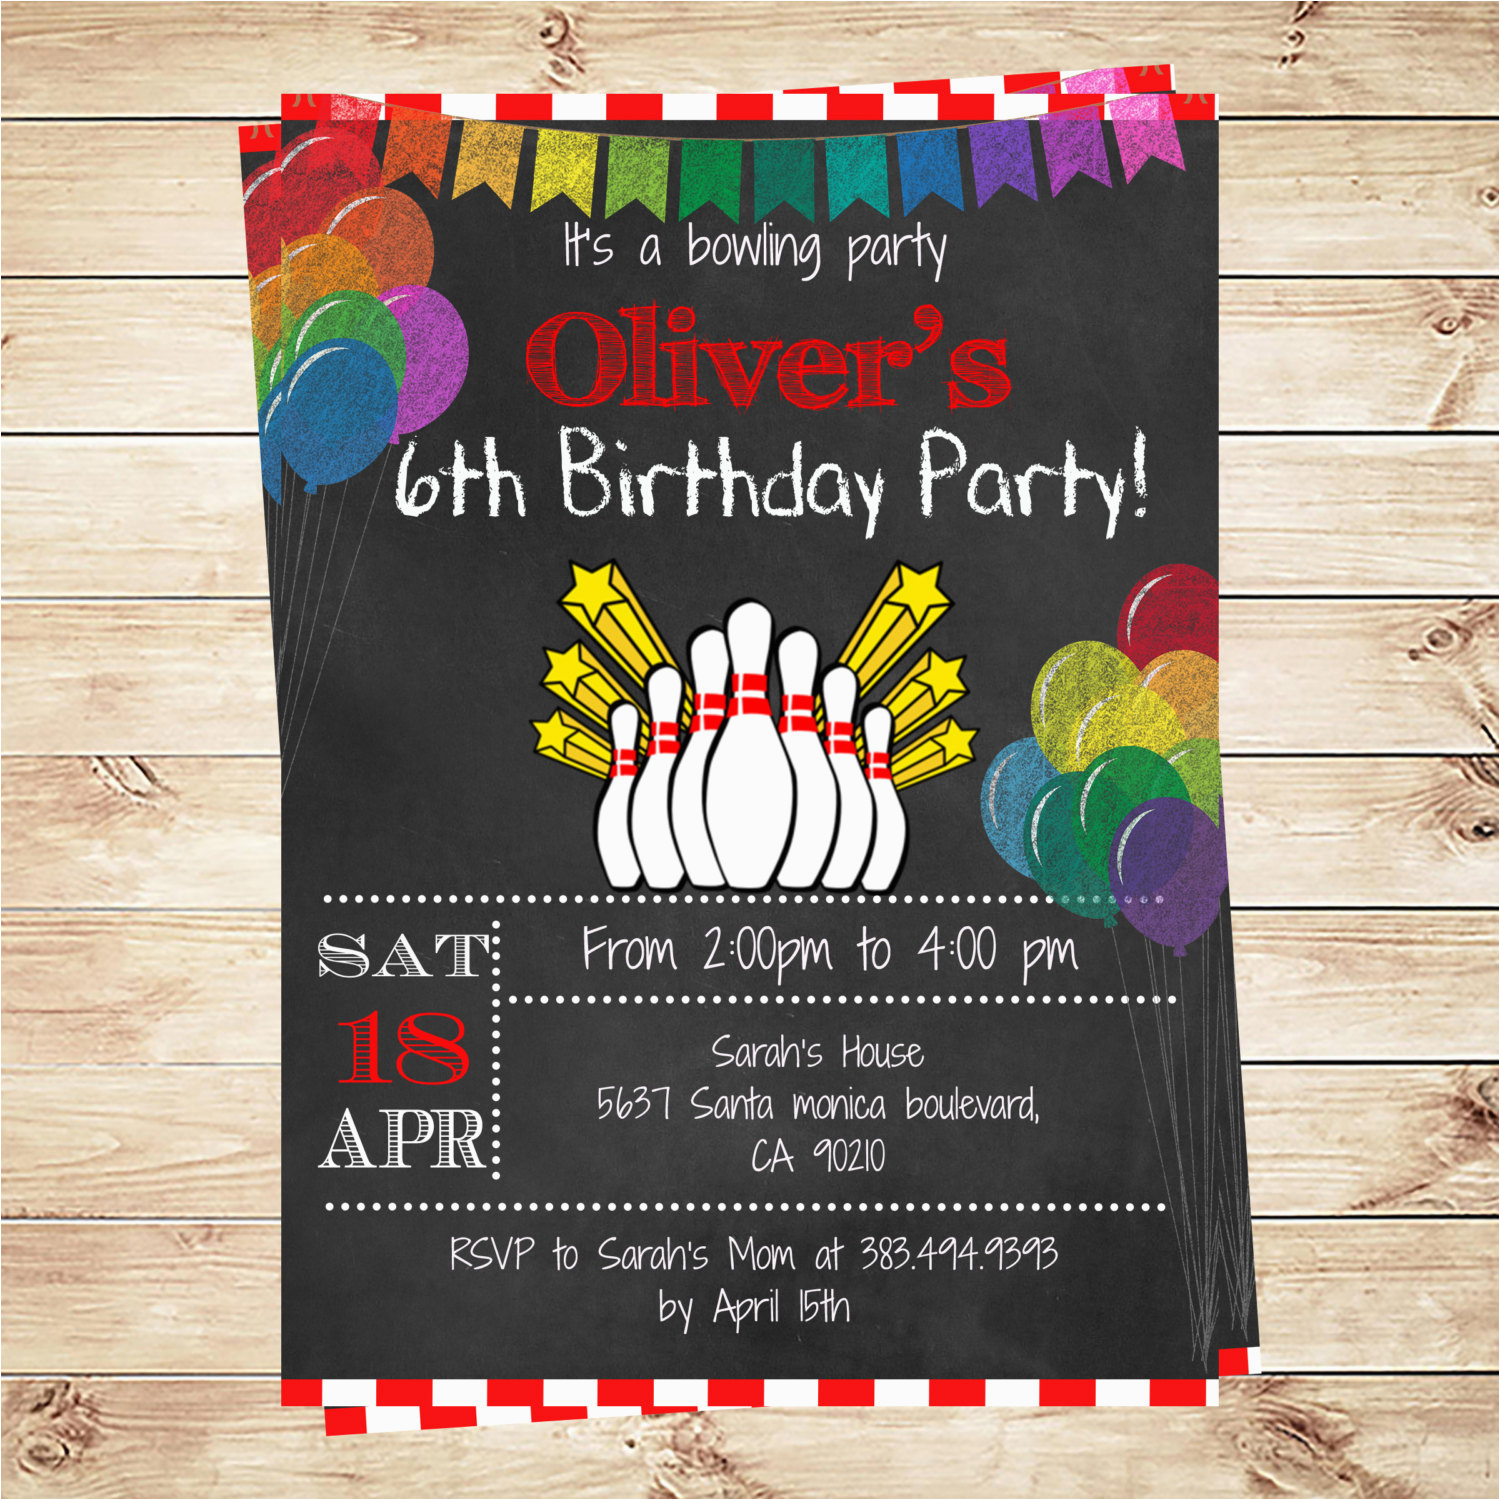 Birthday party invitation ideas girl free 11